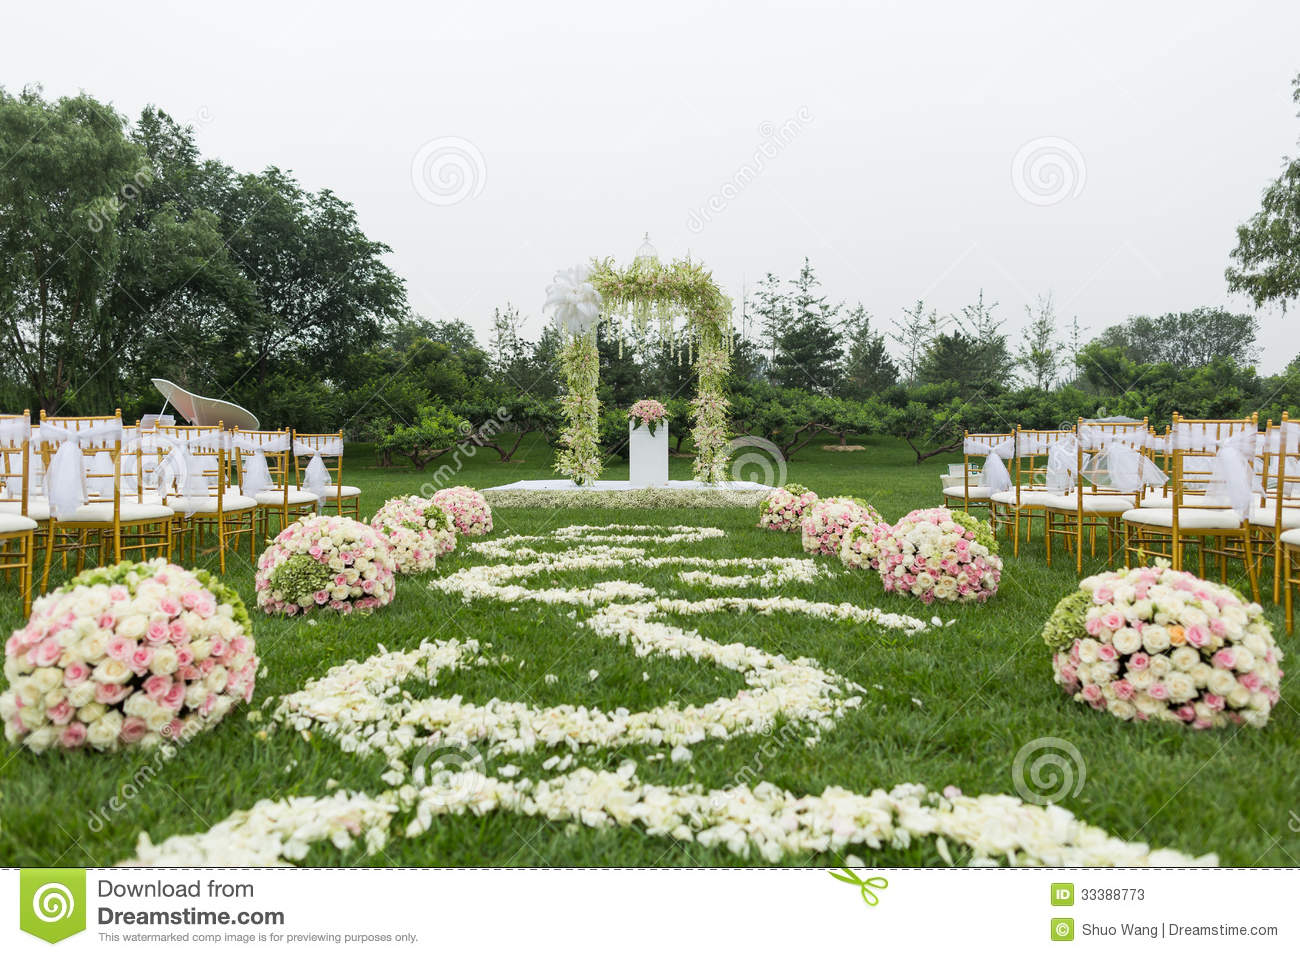 outdoor-wedding-scene-chairs-flowers-33388773.jpg